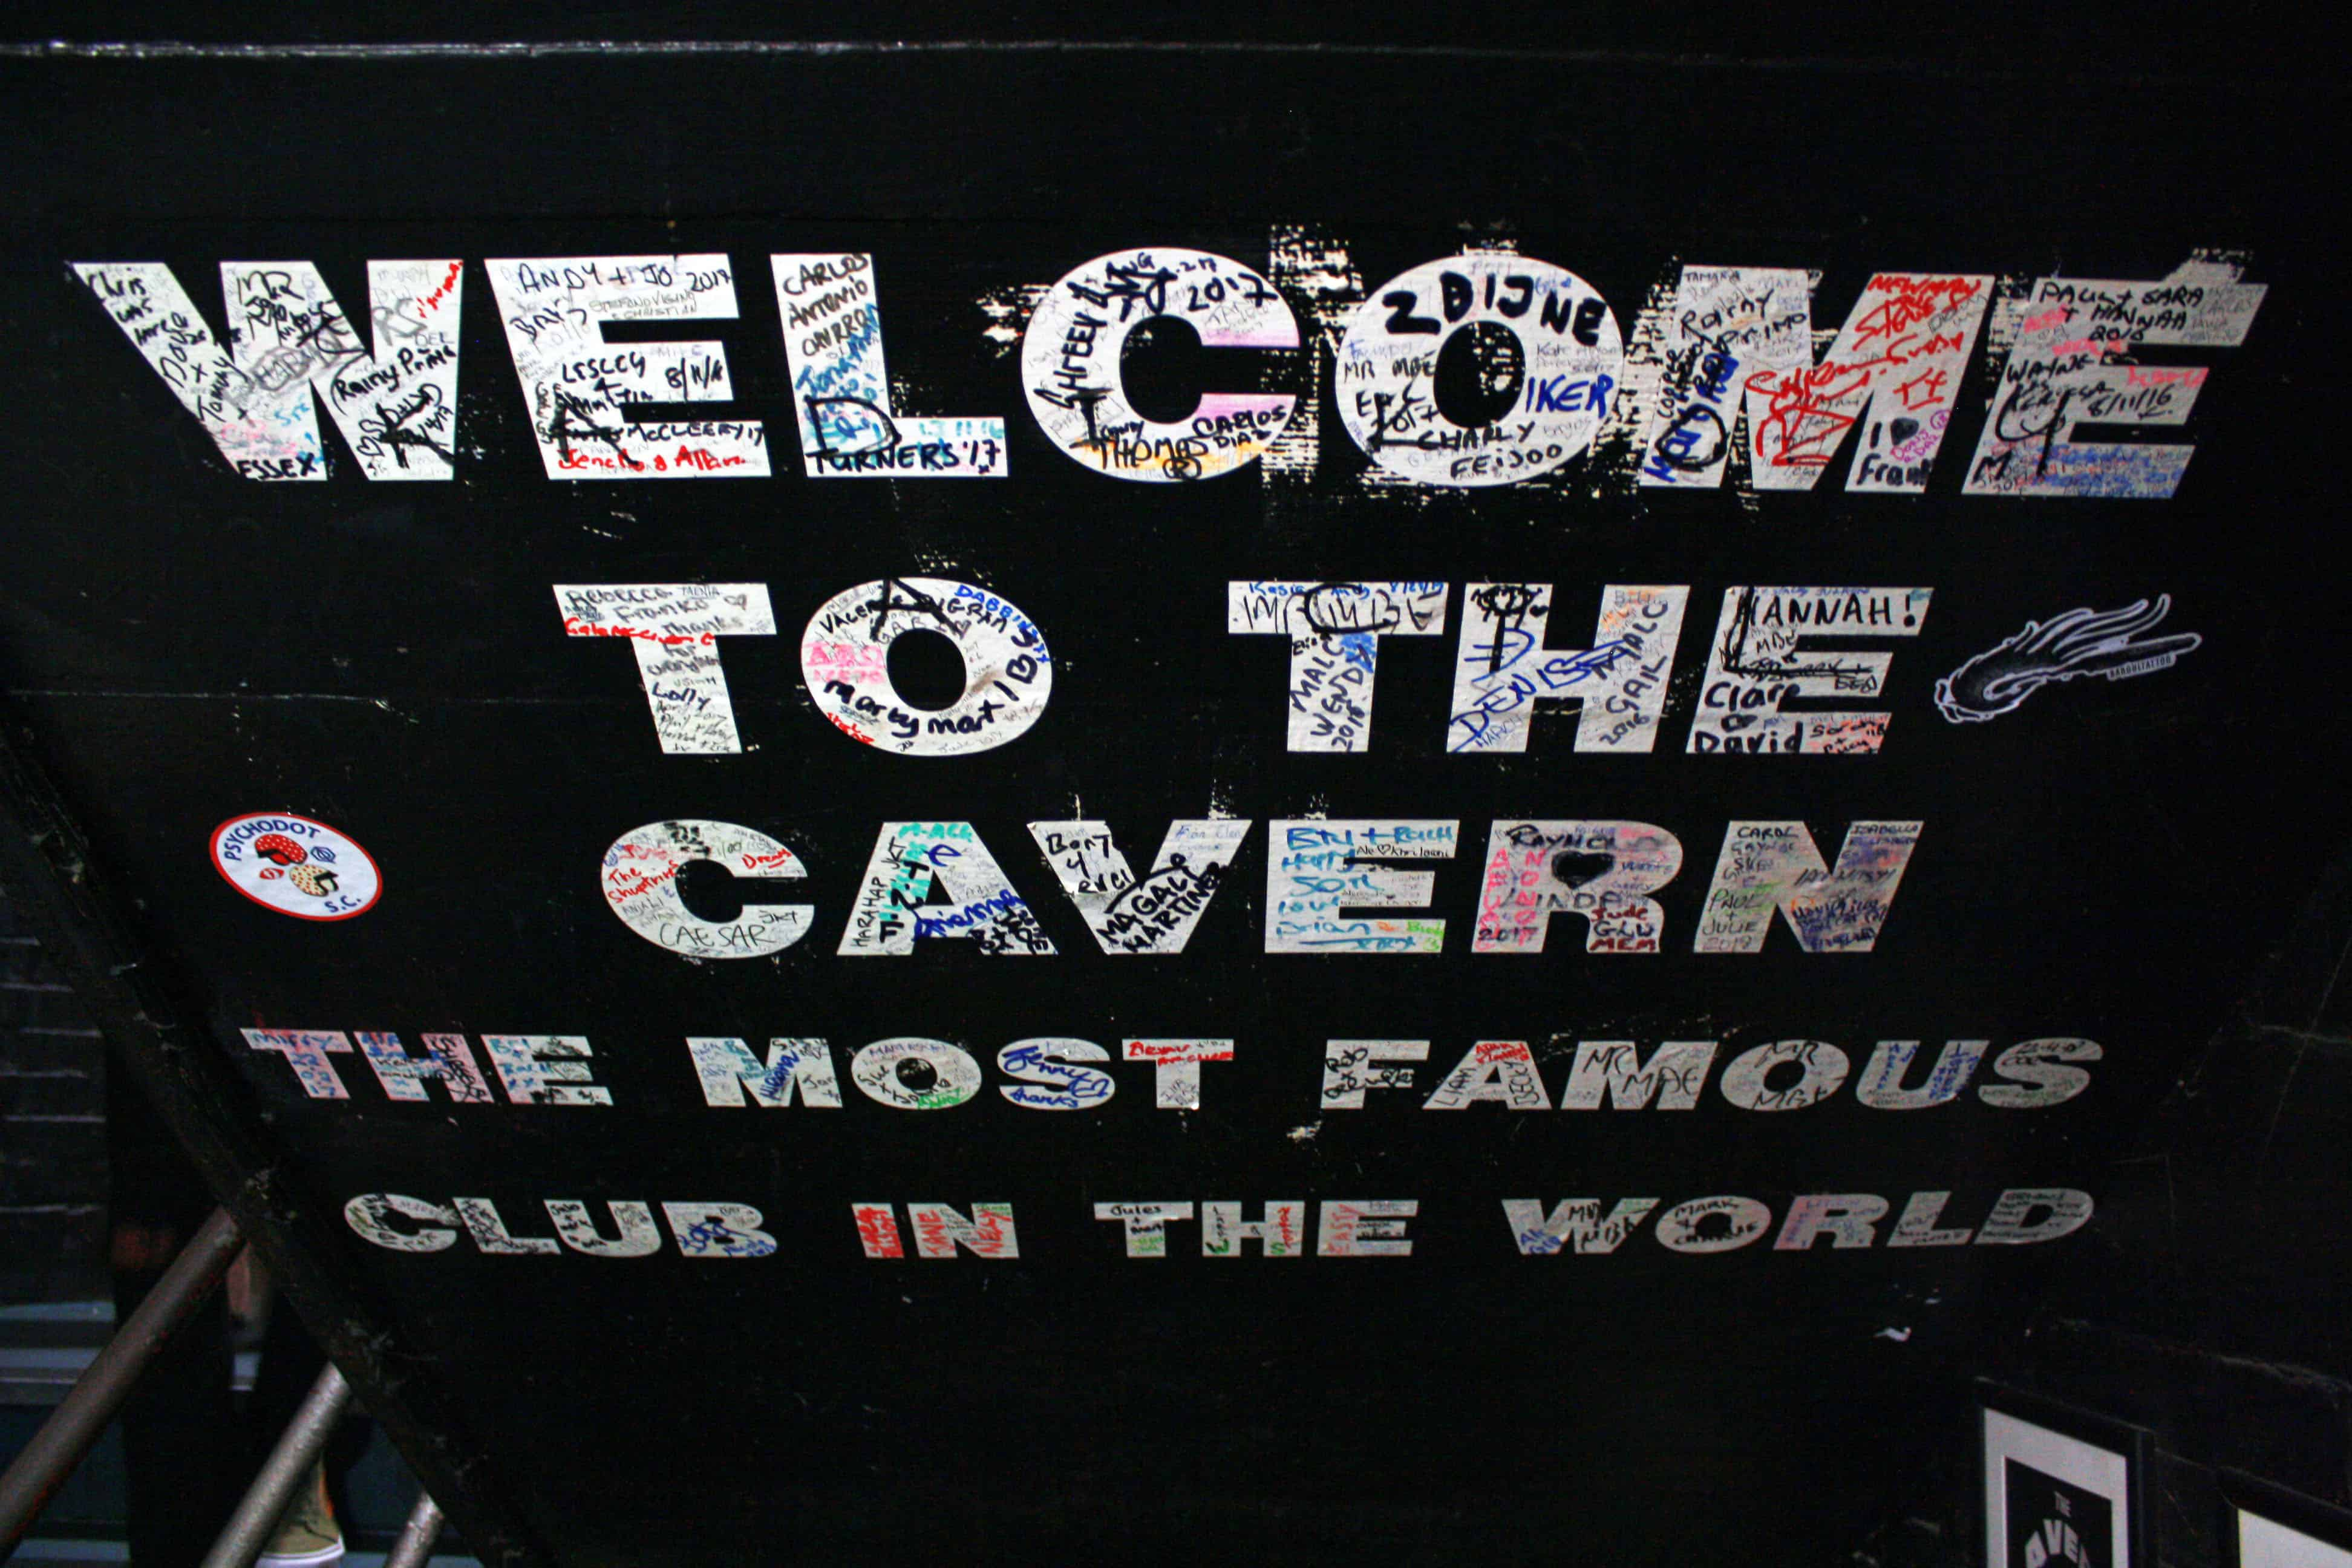 Welcome to The Cavern Club: the most famous club in the world sign